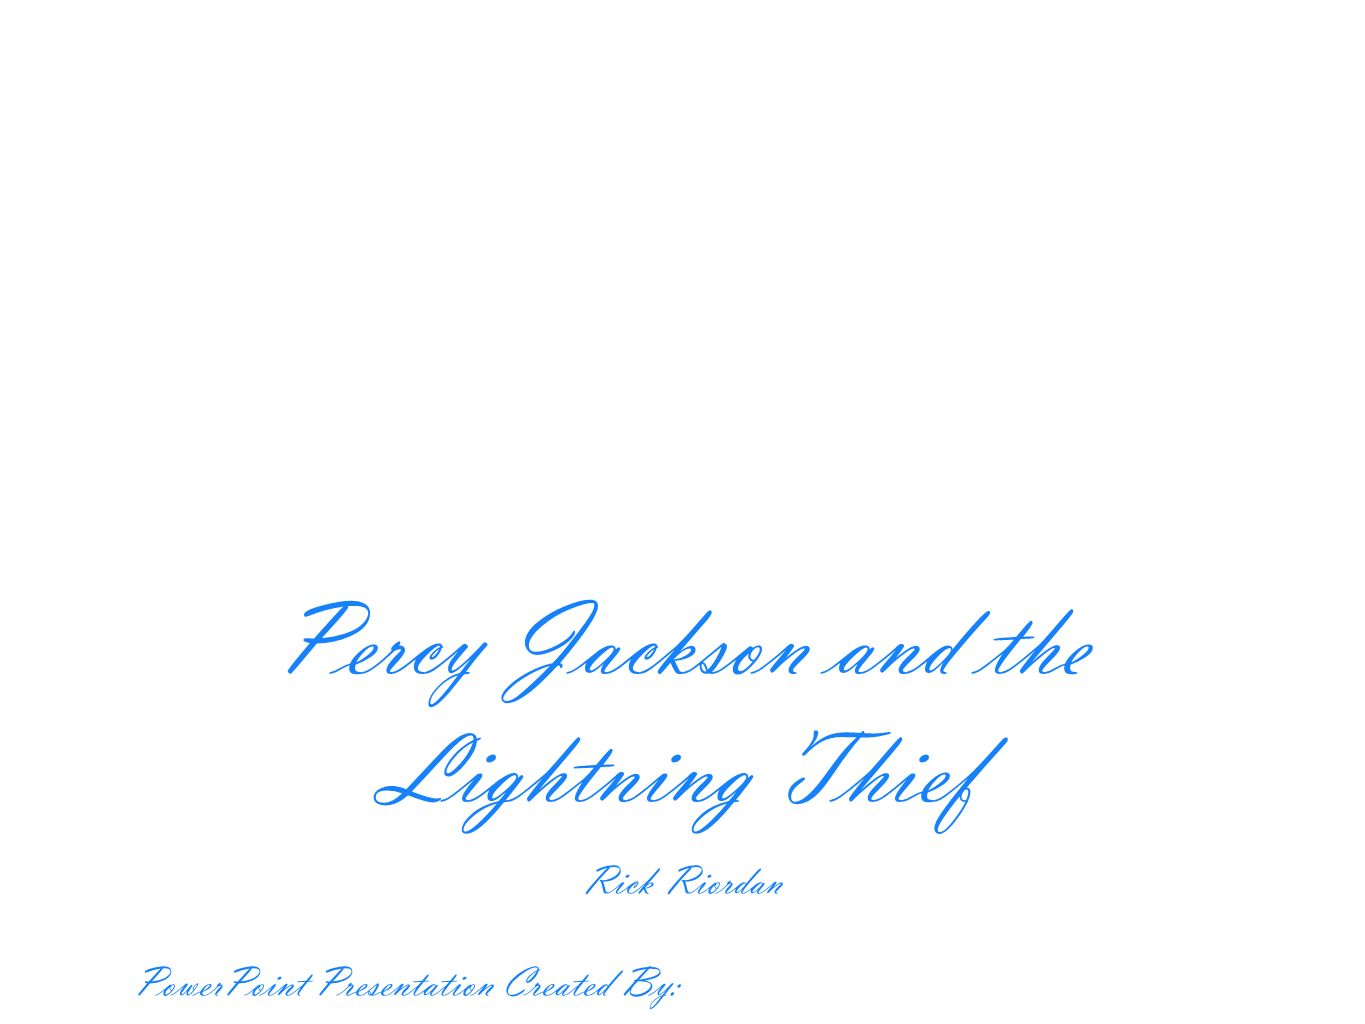 Workbooks percy jackson and the lightning thief worksheets : Percy Jackson and the Lightning Thief - ppt video online download